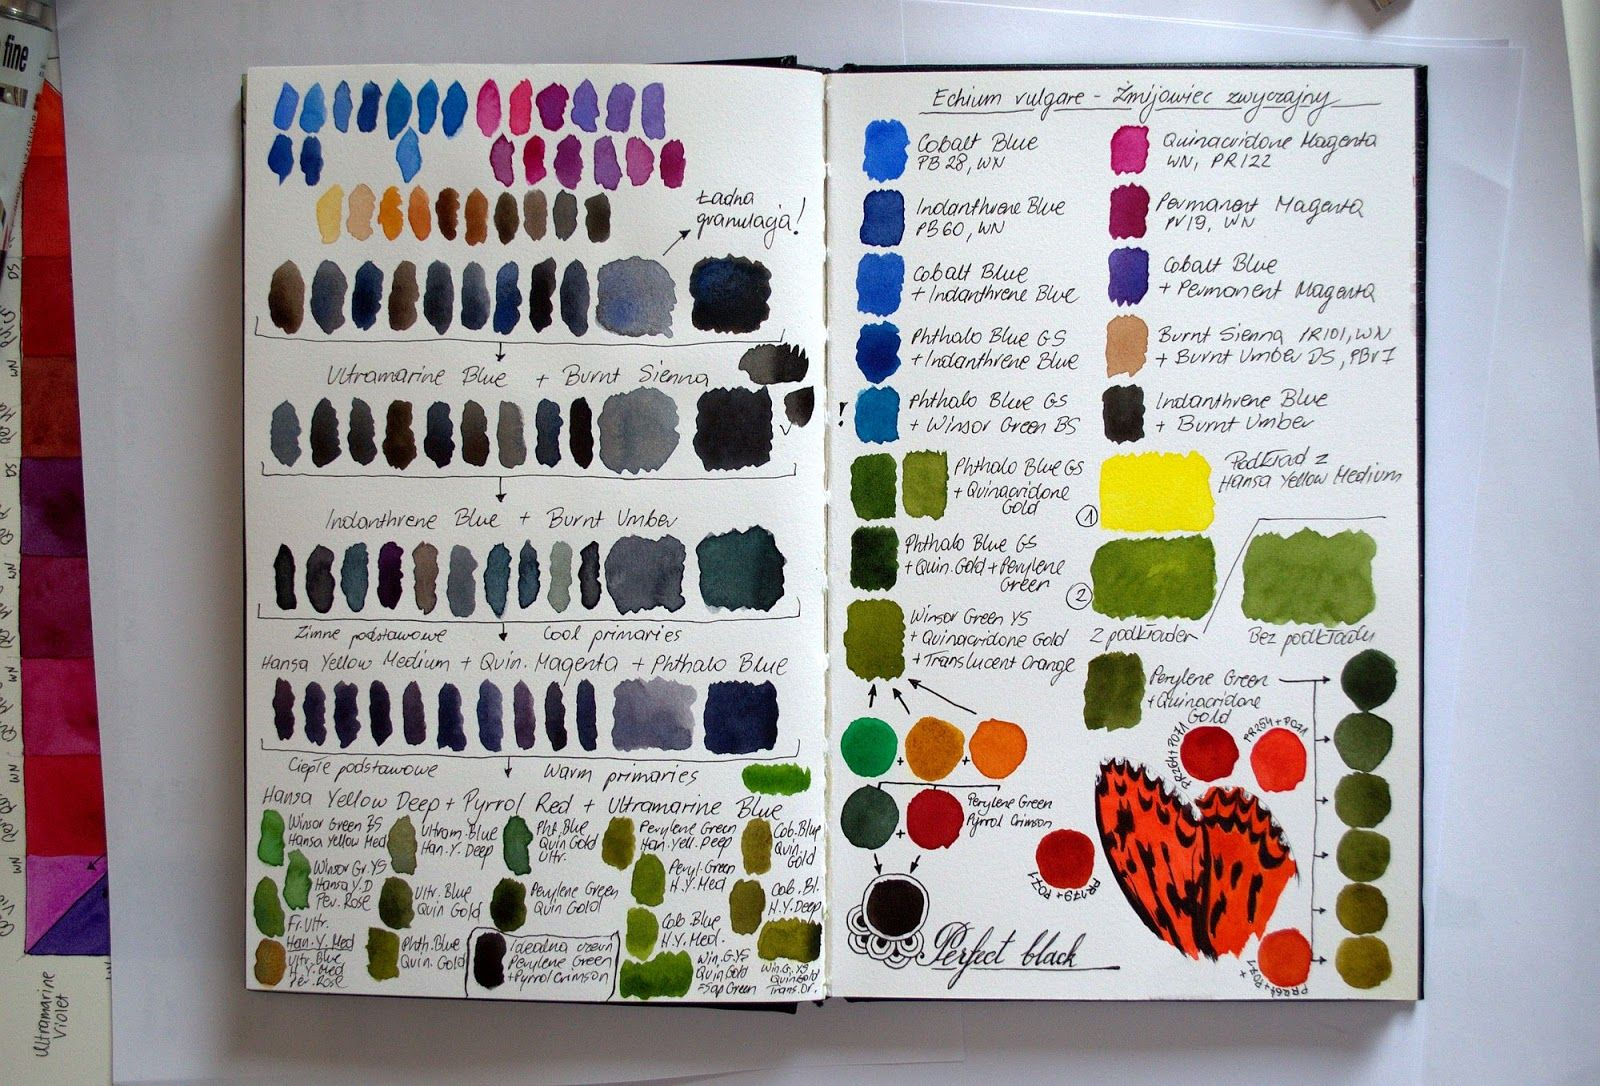 Botanical and Nature Art by Krzysztof Kowalski: Sketchbook once again